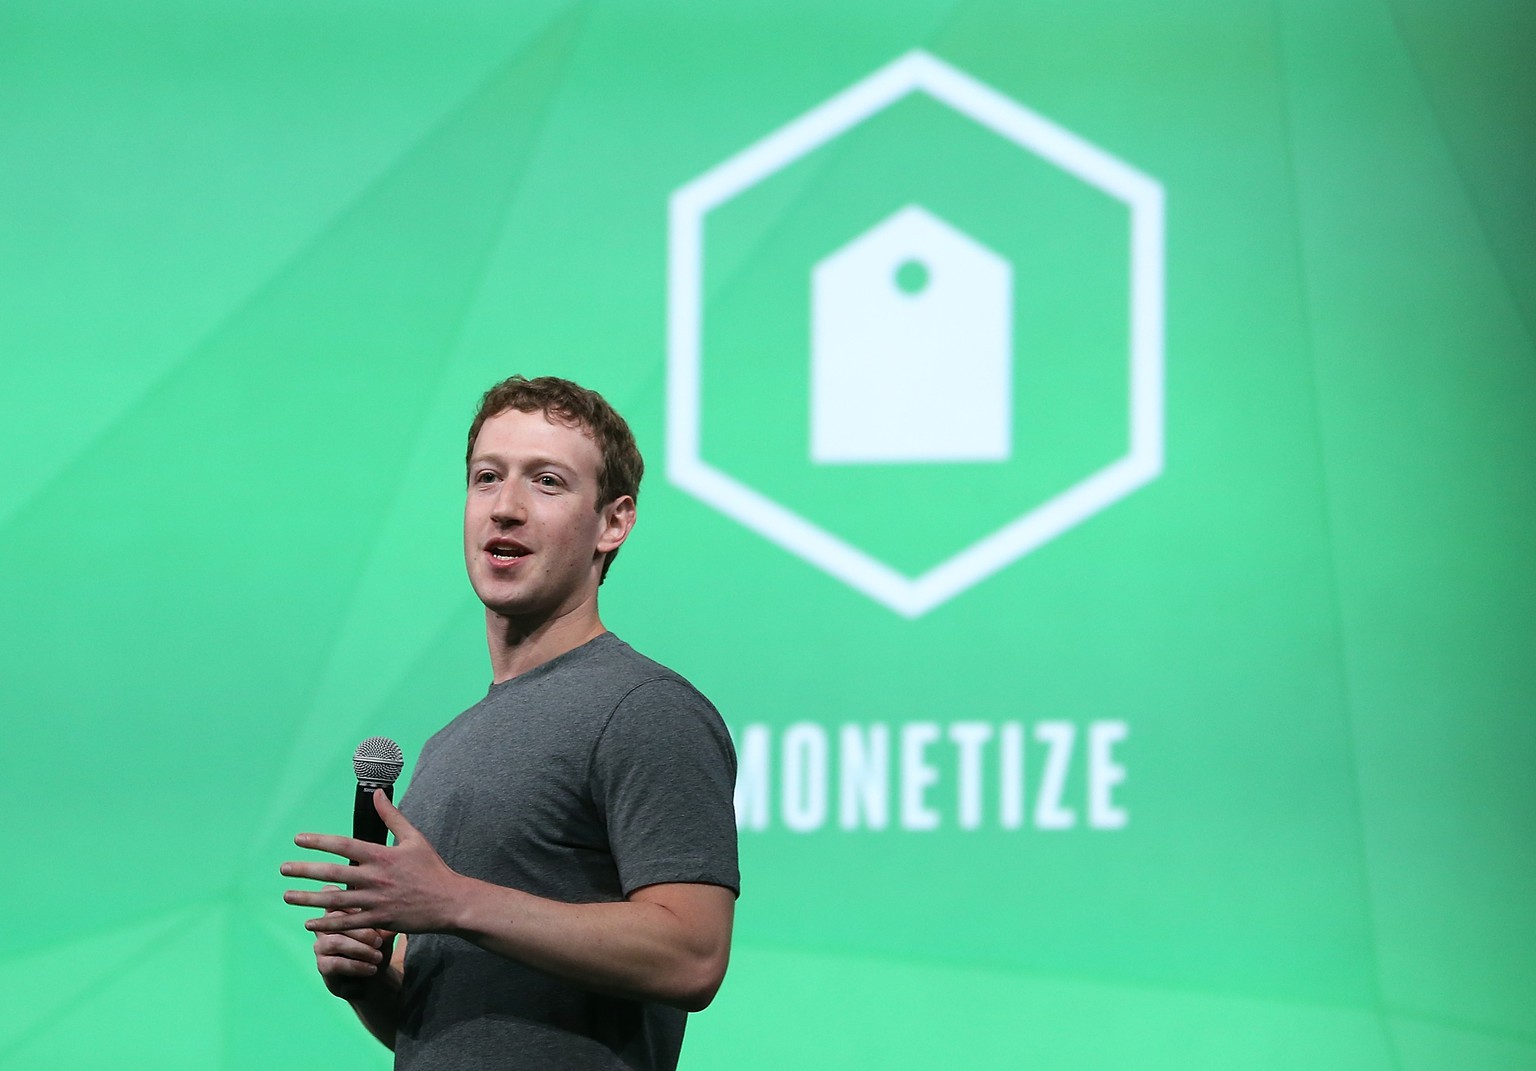 SAN FRANCISCO, CA - APRIL 30:  Facebook CEO Mark Zuckerberg delivers the opening kenote at the Facebook f8 conference on April 30, 2014 in San Francisco, California. Facebook CEO Mark Zuckerberg kicked off the annual one-day F8 developers conference.  (Photo by Justin Sullivan/Getty Images)